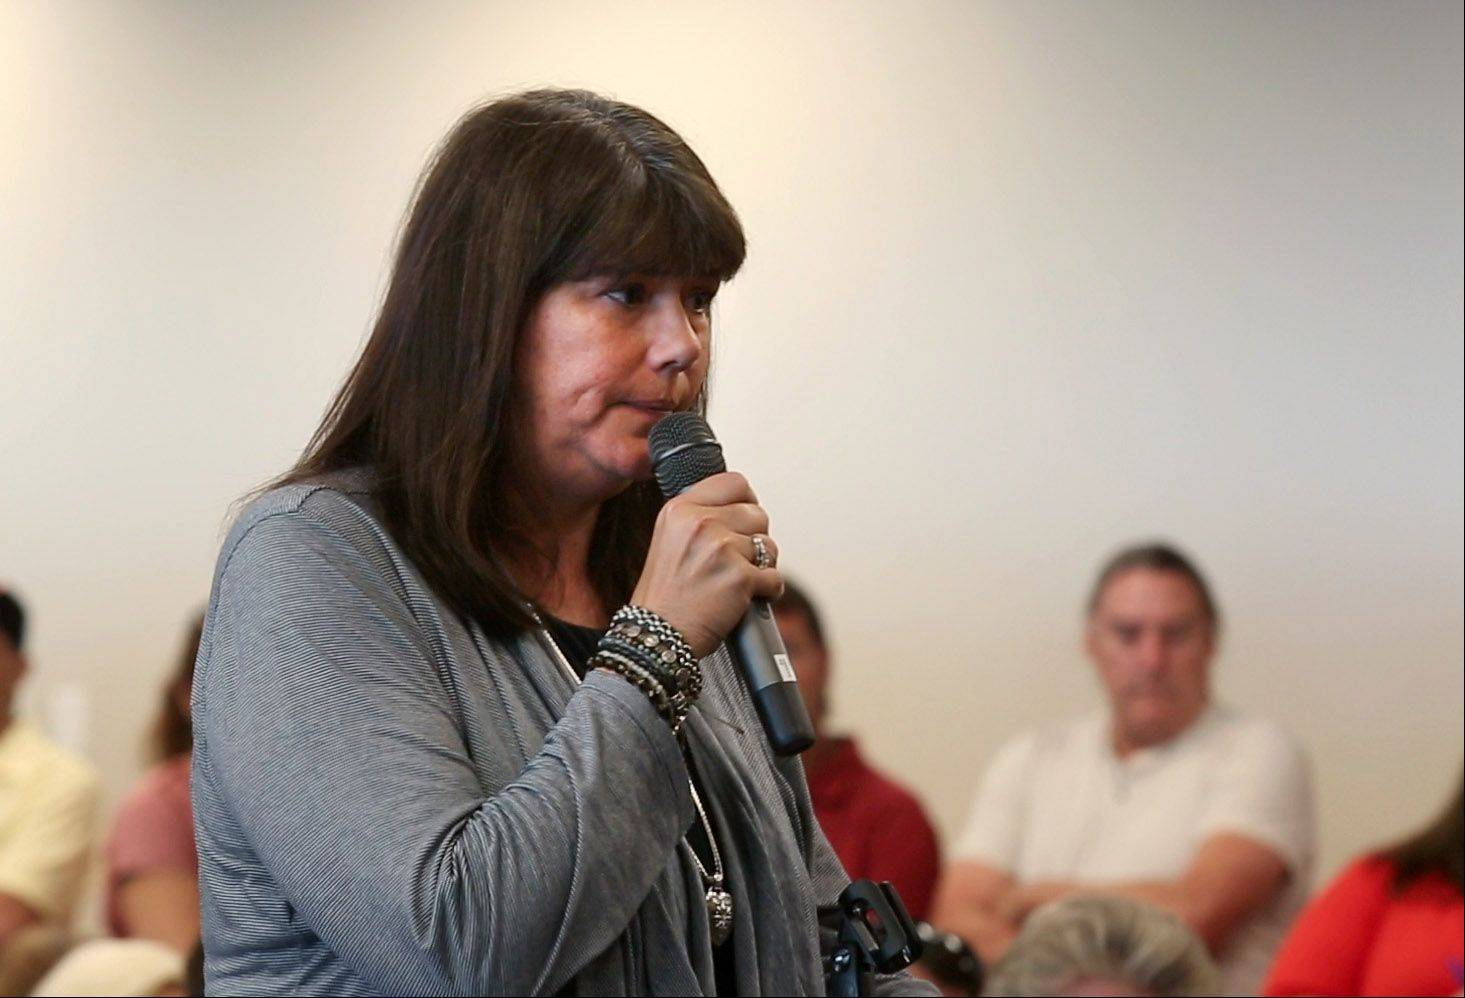 Libertyville resident Margaret Borcia, whose 10-year-old son, Tony, was killed by an impaired boater, speaks at a state senate committee hearing on proposals for stronger watercraft regulations.